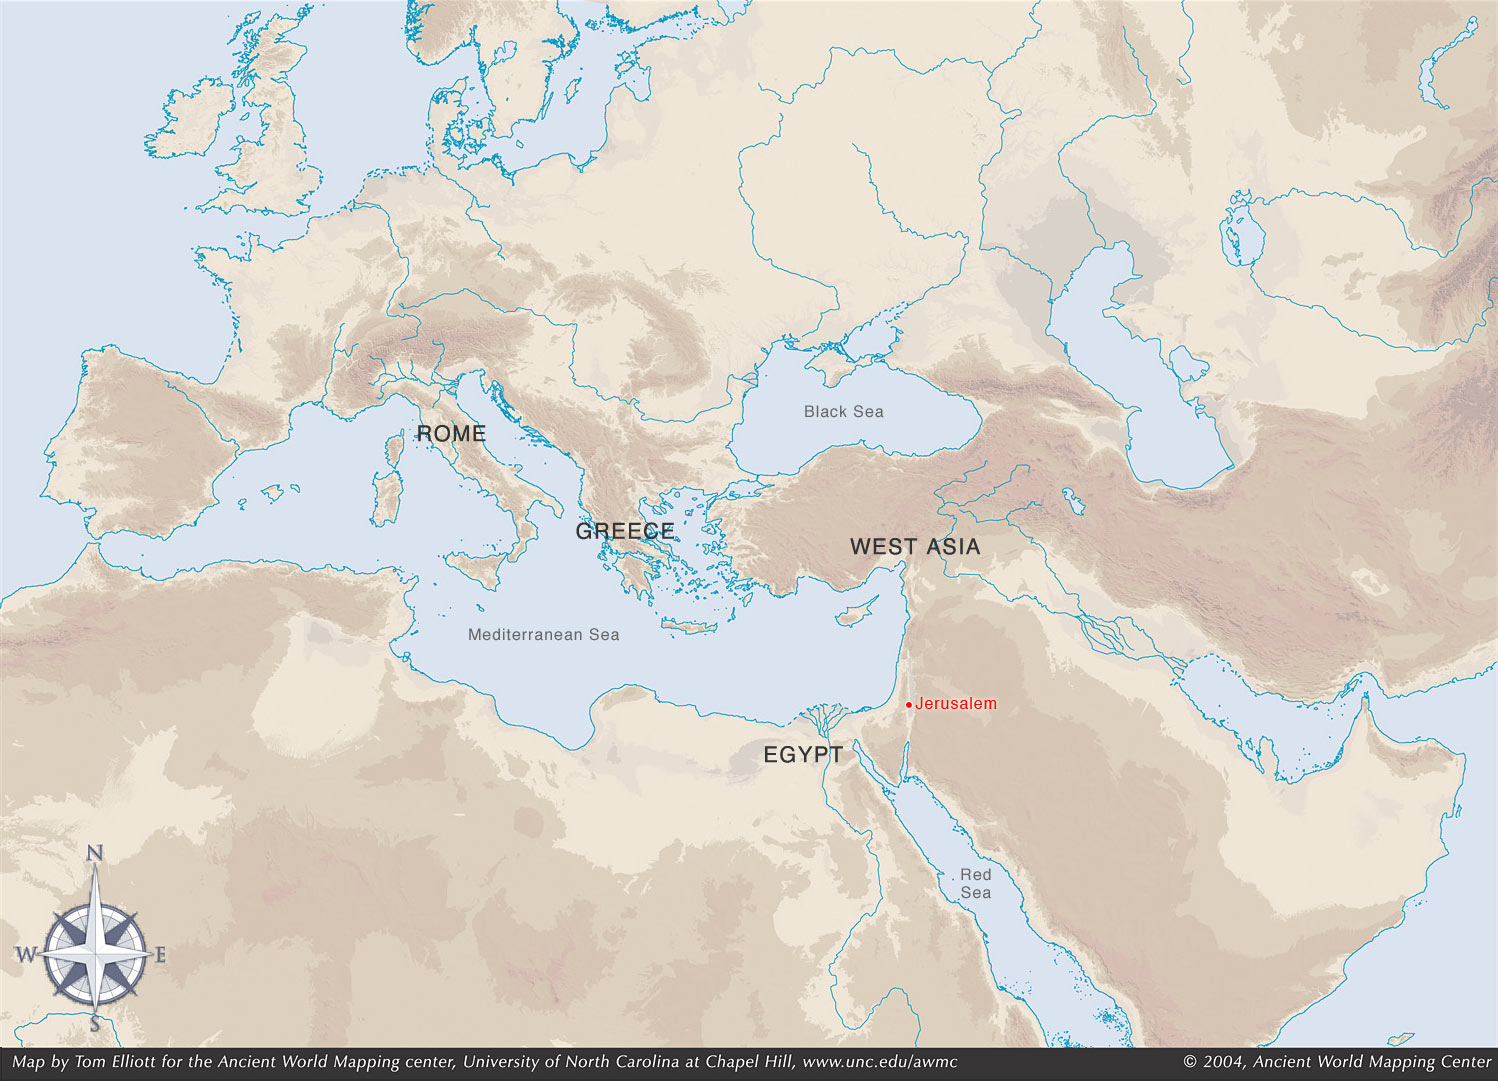 Reed college humanities 110 basic chronology of the ancient world map of jerusalem in maccabean period against the seleucids daniel composed in the early part of this period gumiabroncs Image collections